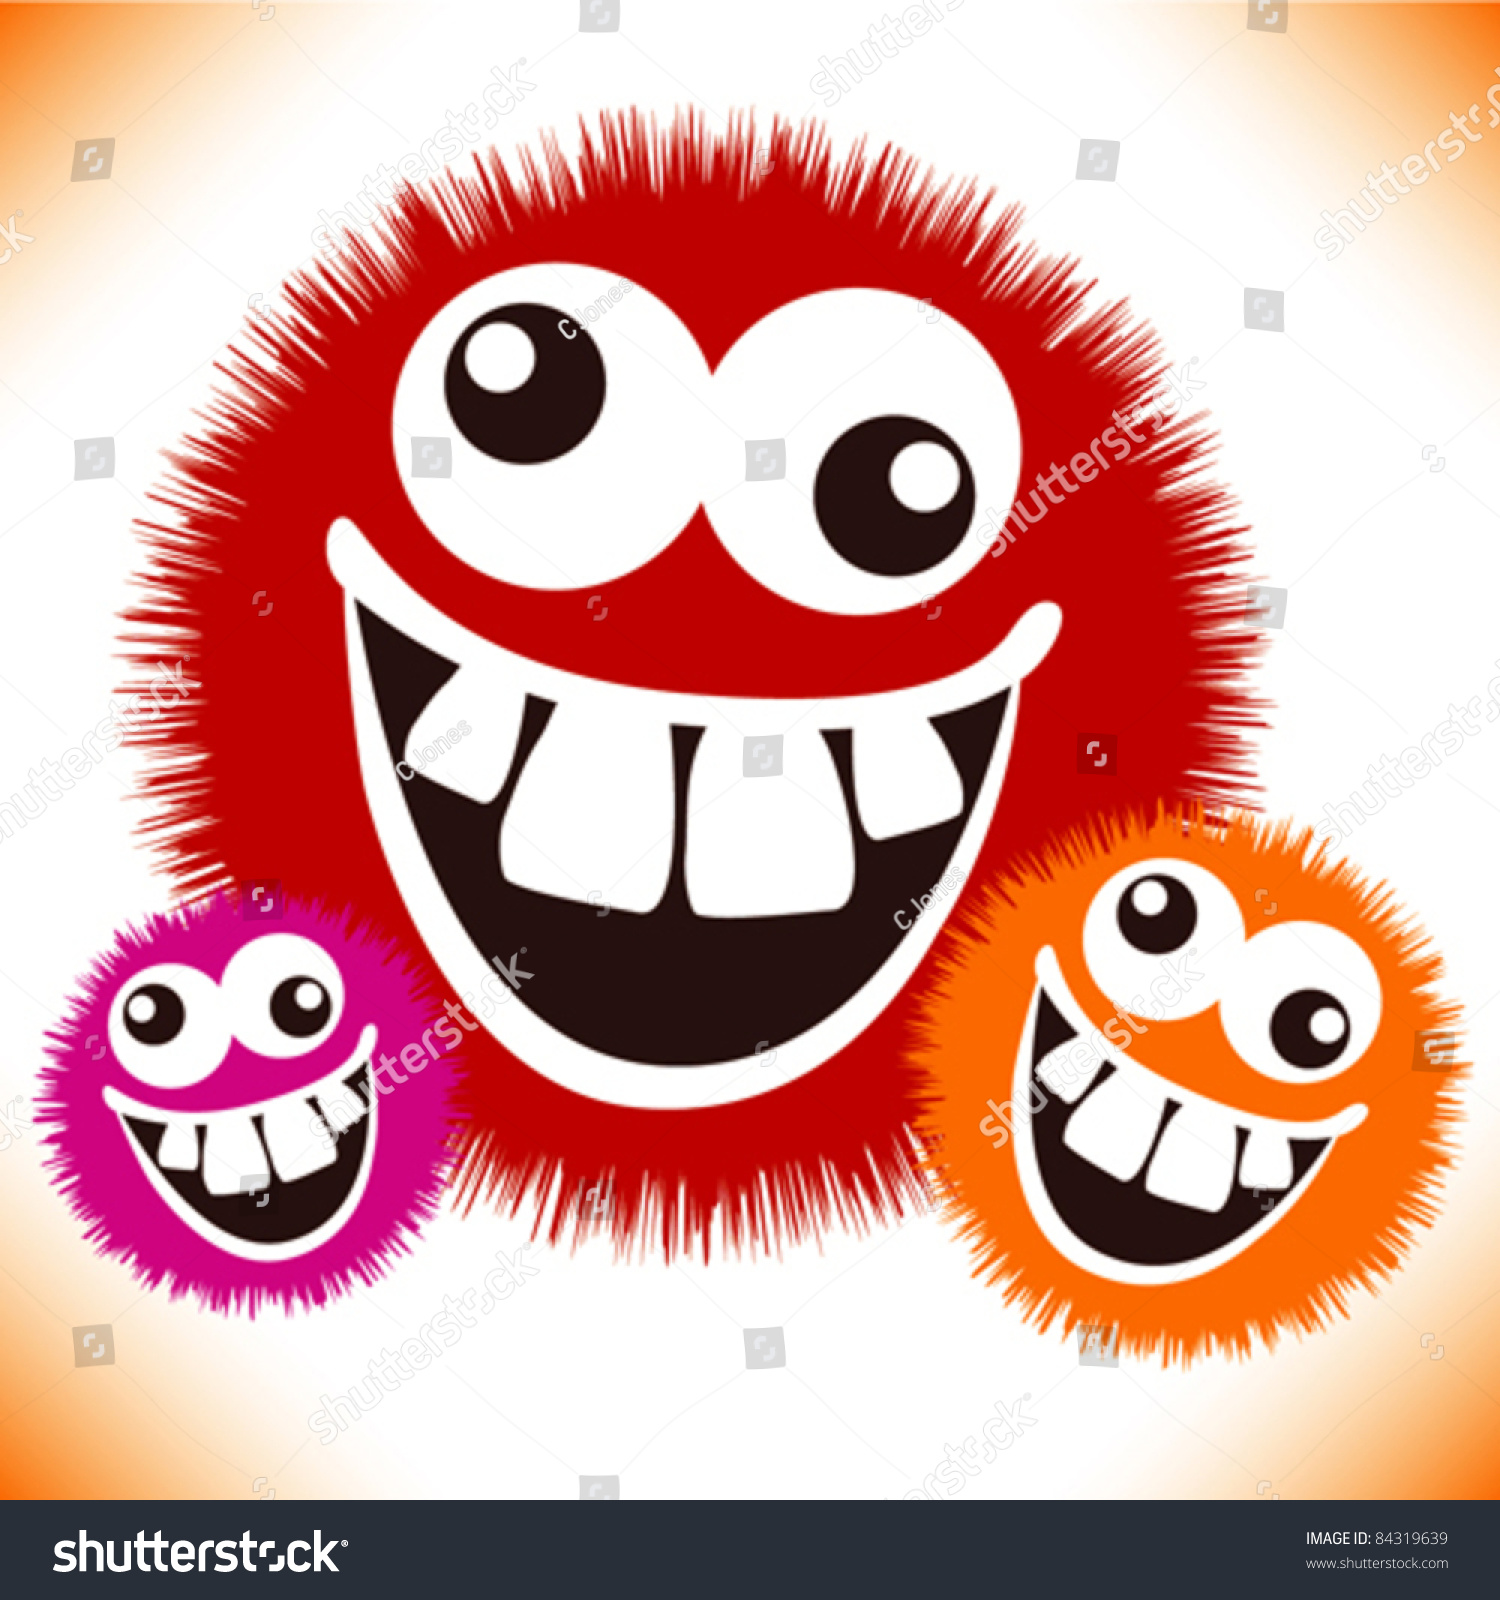 Crazy Furry Funny Face Cartoon Design Stock Vector ...